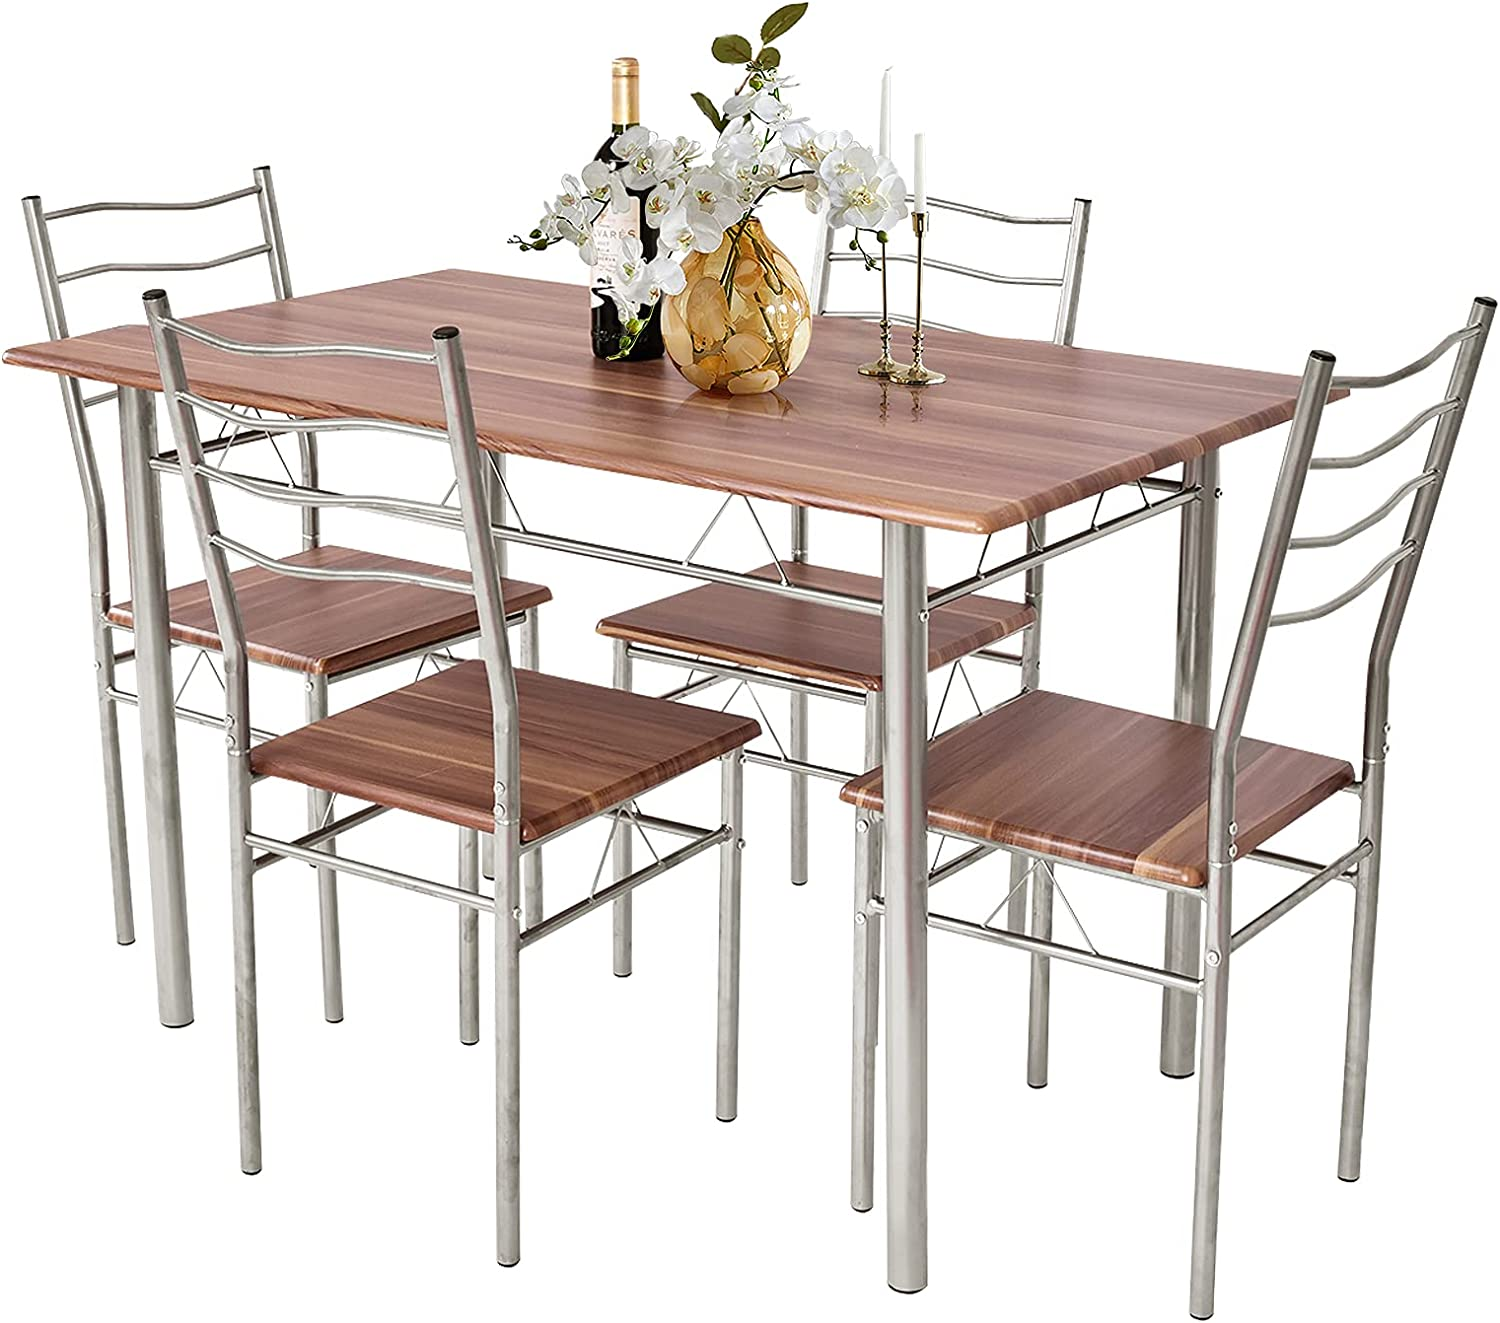 Nafort 5-Piece Kitchen Free shipping anywhere in the nation Branded goods Dining Table Small Modern Set Roo